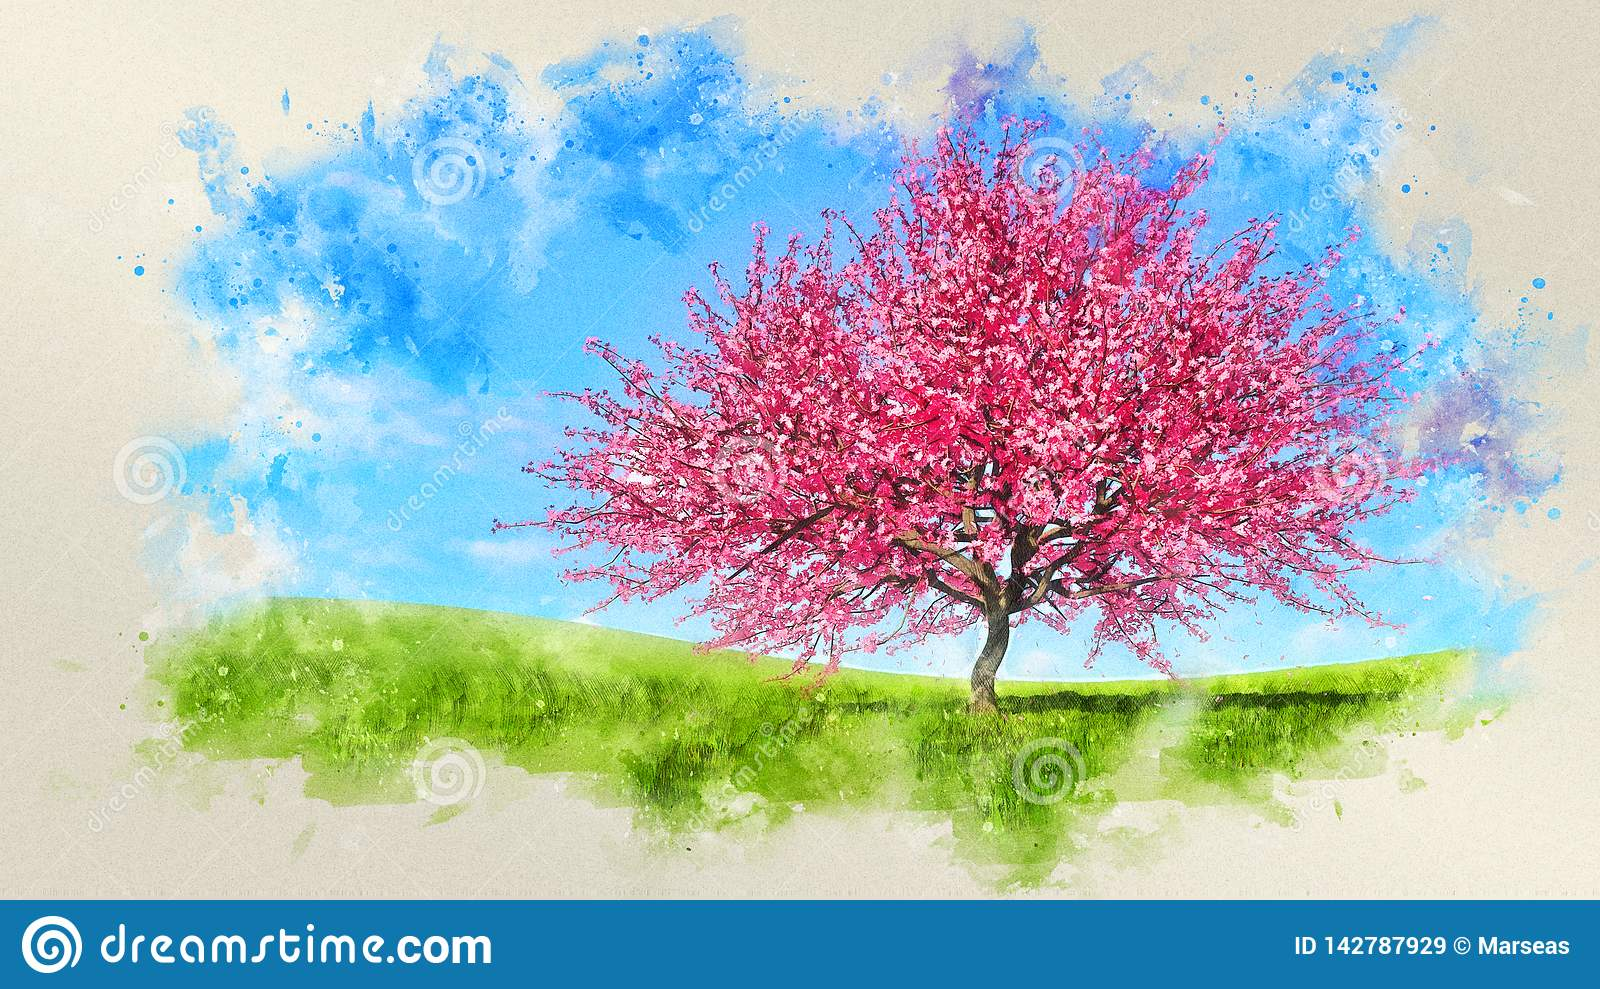 Watercolor Spring Landscape With Cherry Blossoms Stock